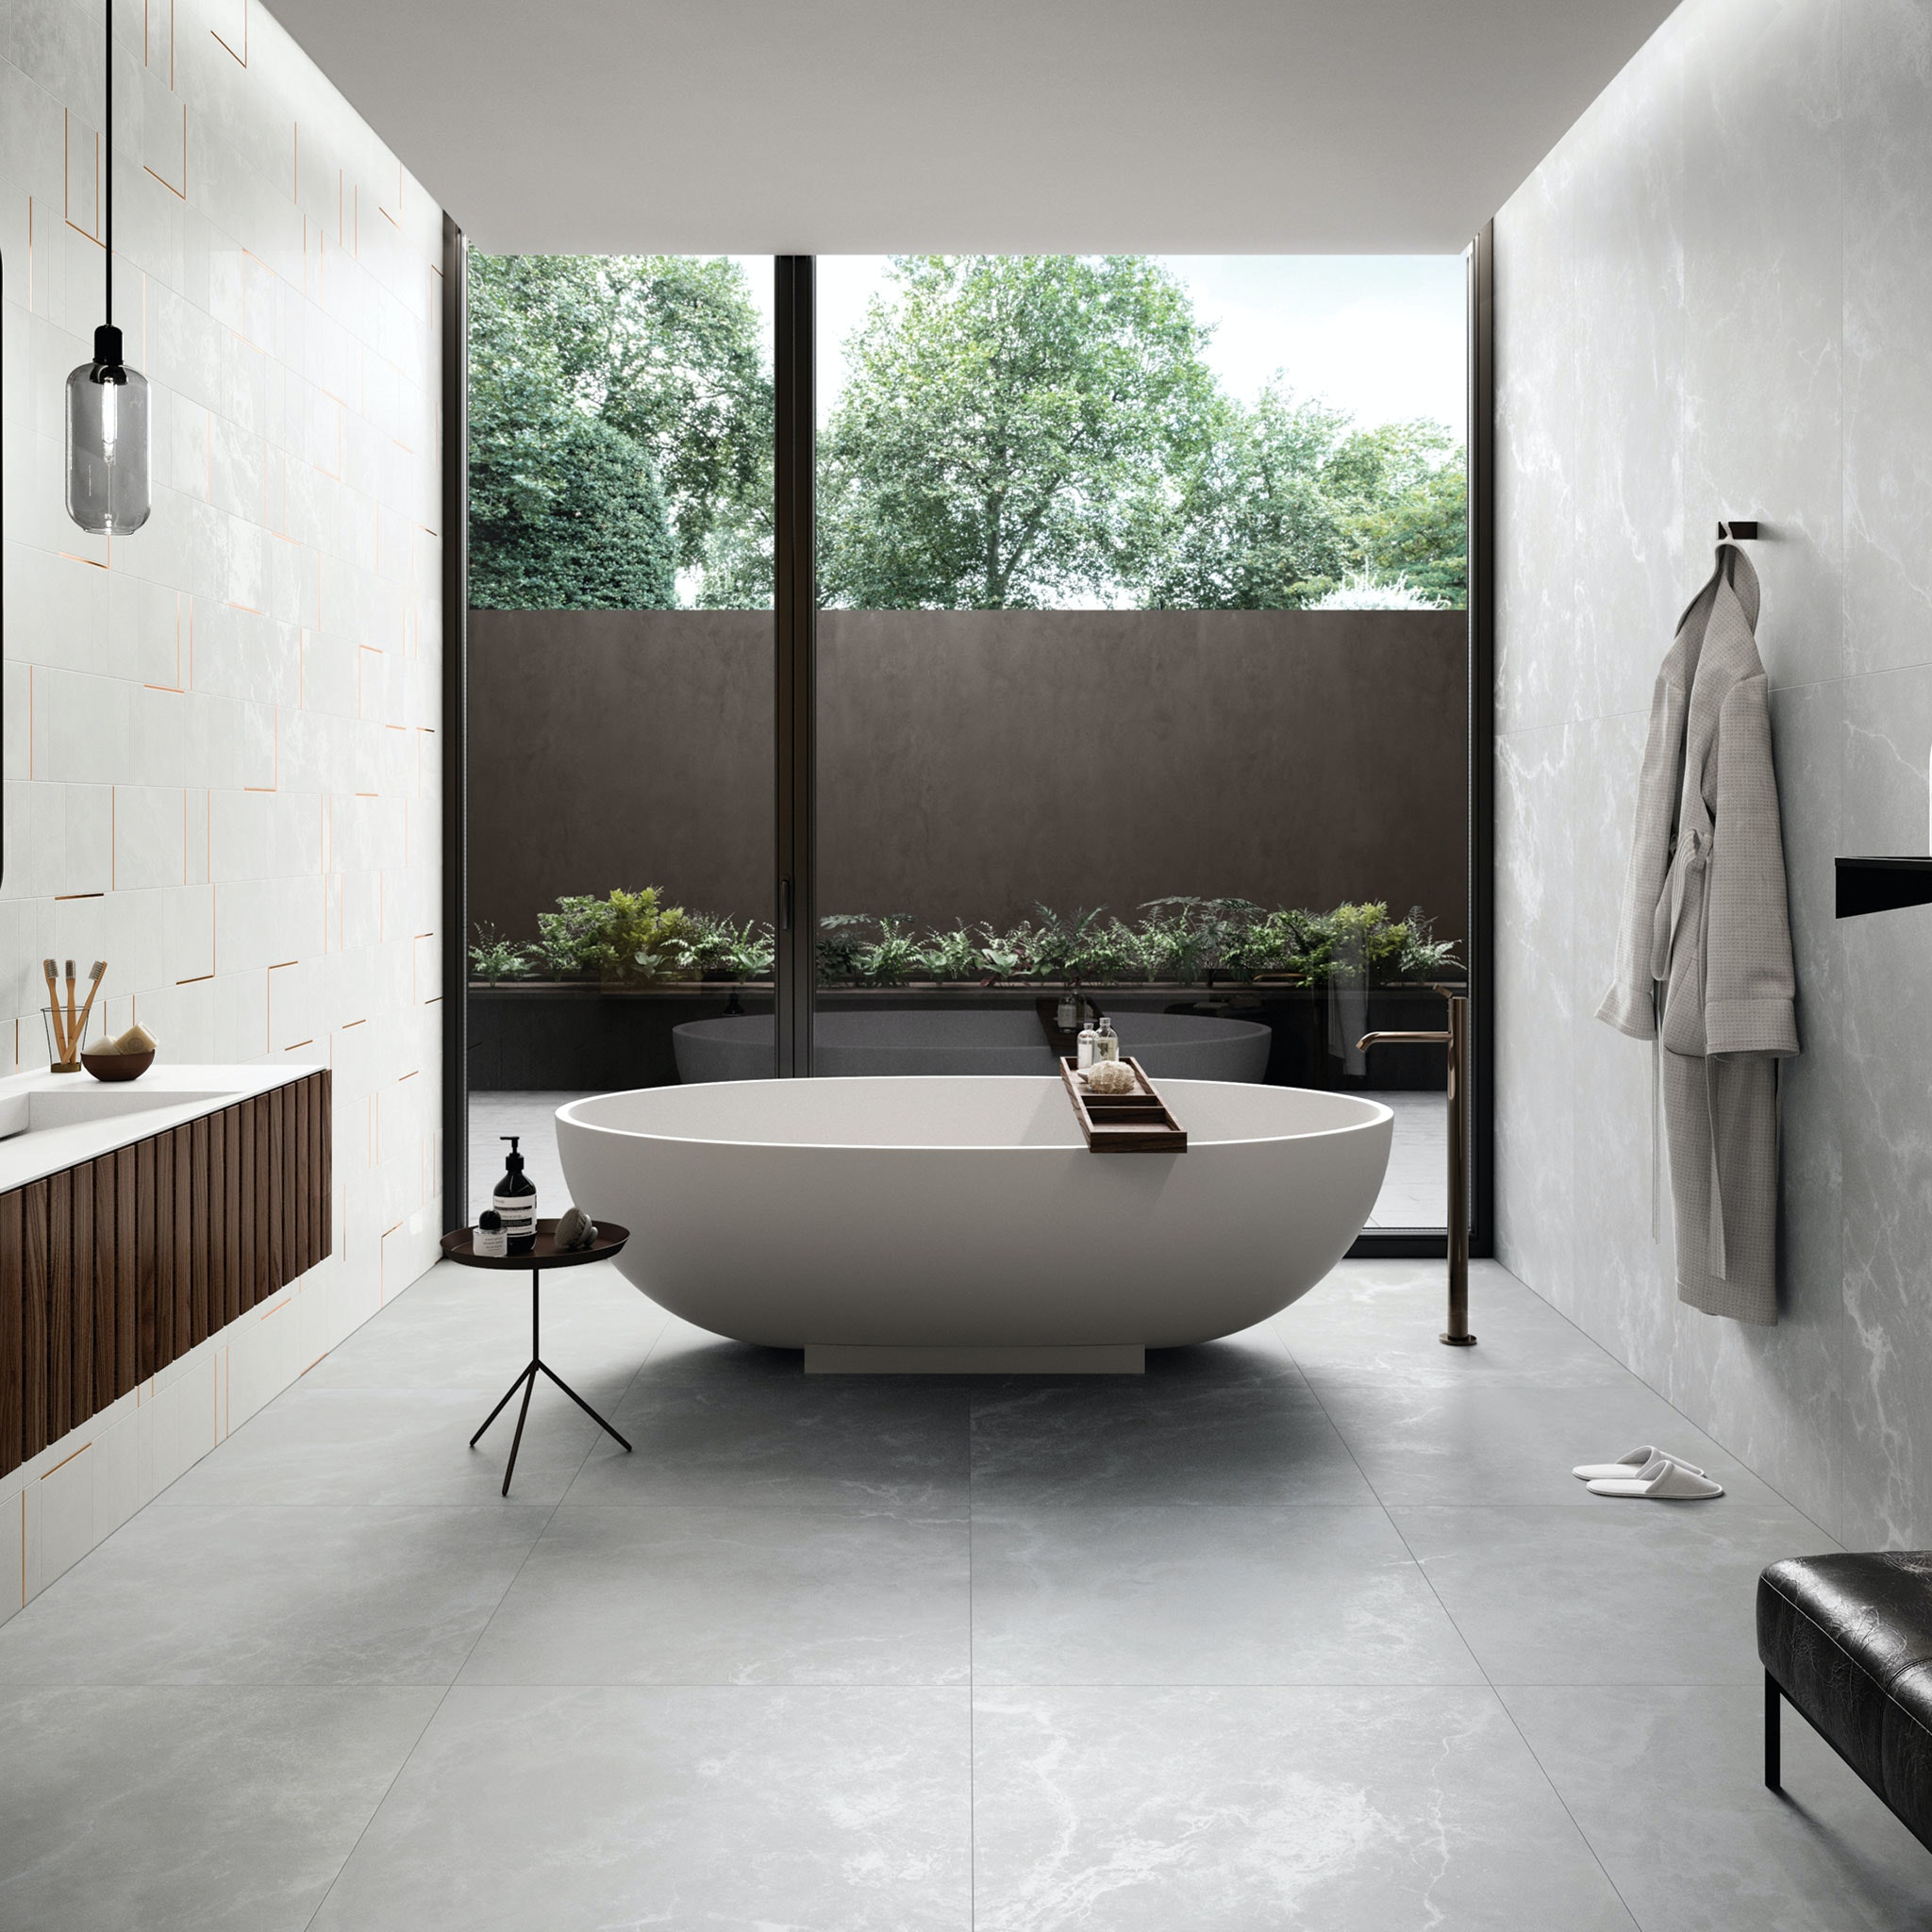 Sparkling light grey tiles on walls and floor in a large format. A bath sits in the centre of the room which looks out into a modern courtyard. On the left, we see a feature mosaic in the same tile with a bronze insert. A glimpse of a vanity and pendant can also be seen on the left. On the right a robe is hanging off the wall and we see a glimpse of a bench. The daylight shines off the floor tiles.